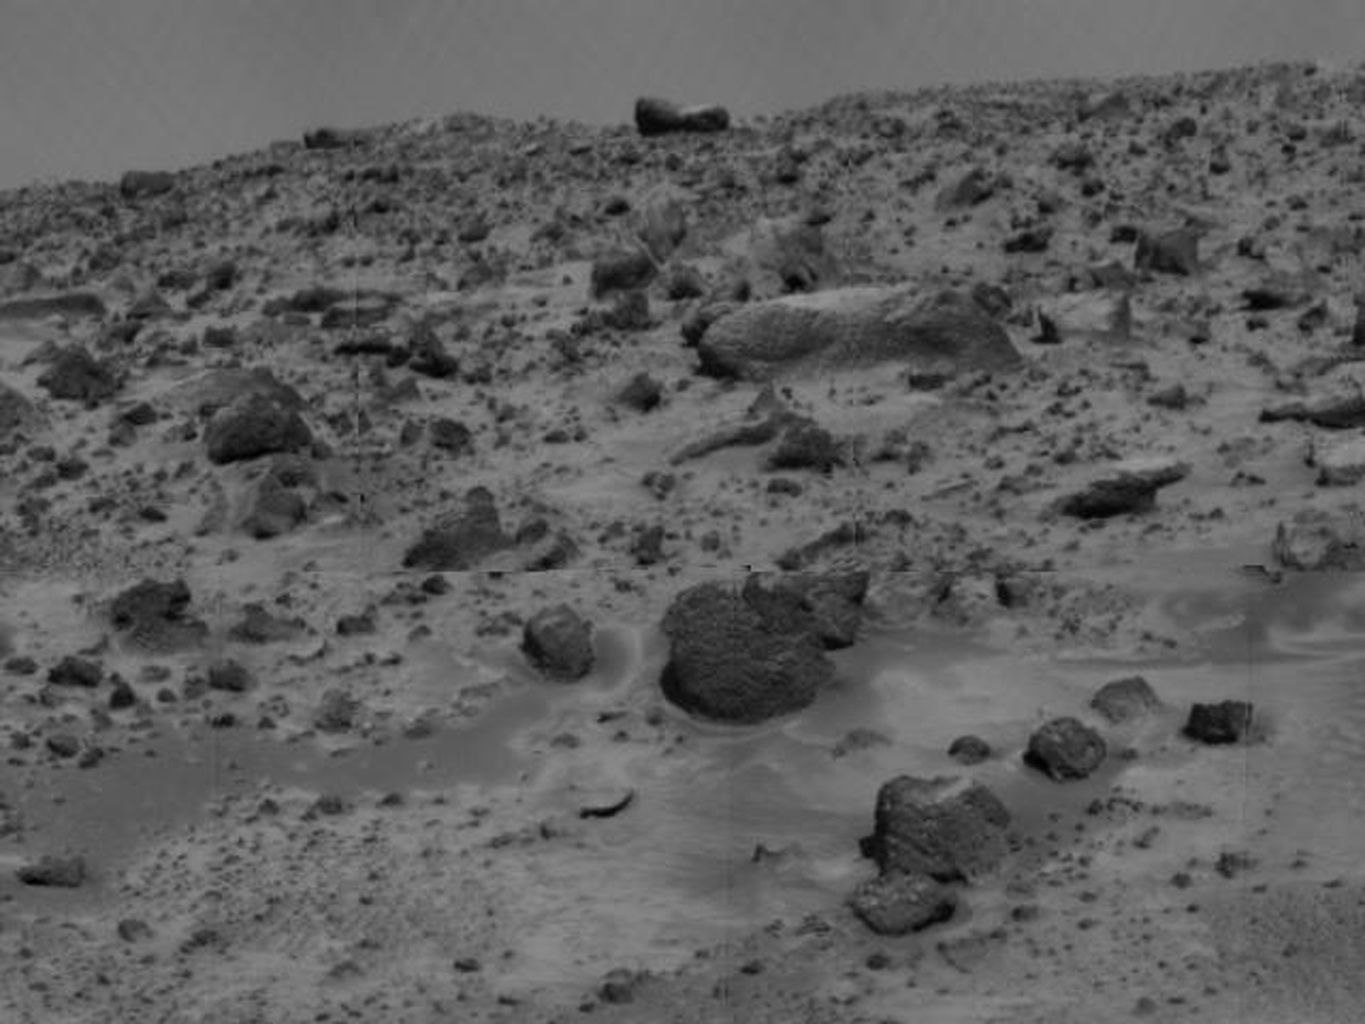 This view of the rock on Mars dubbed 'Couch' was taken by NASA's deployed Imager for Mars Pathfinder (IMP) on July 7, 1997.